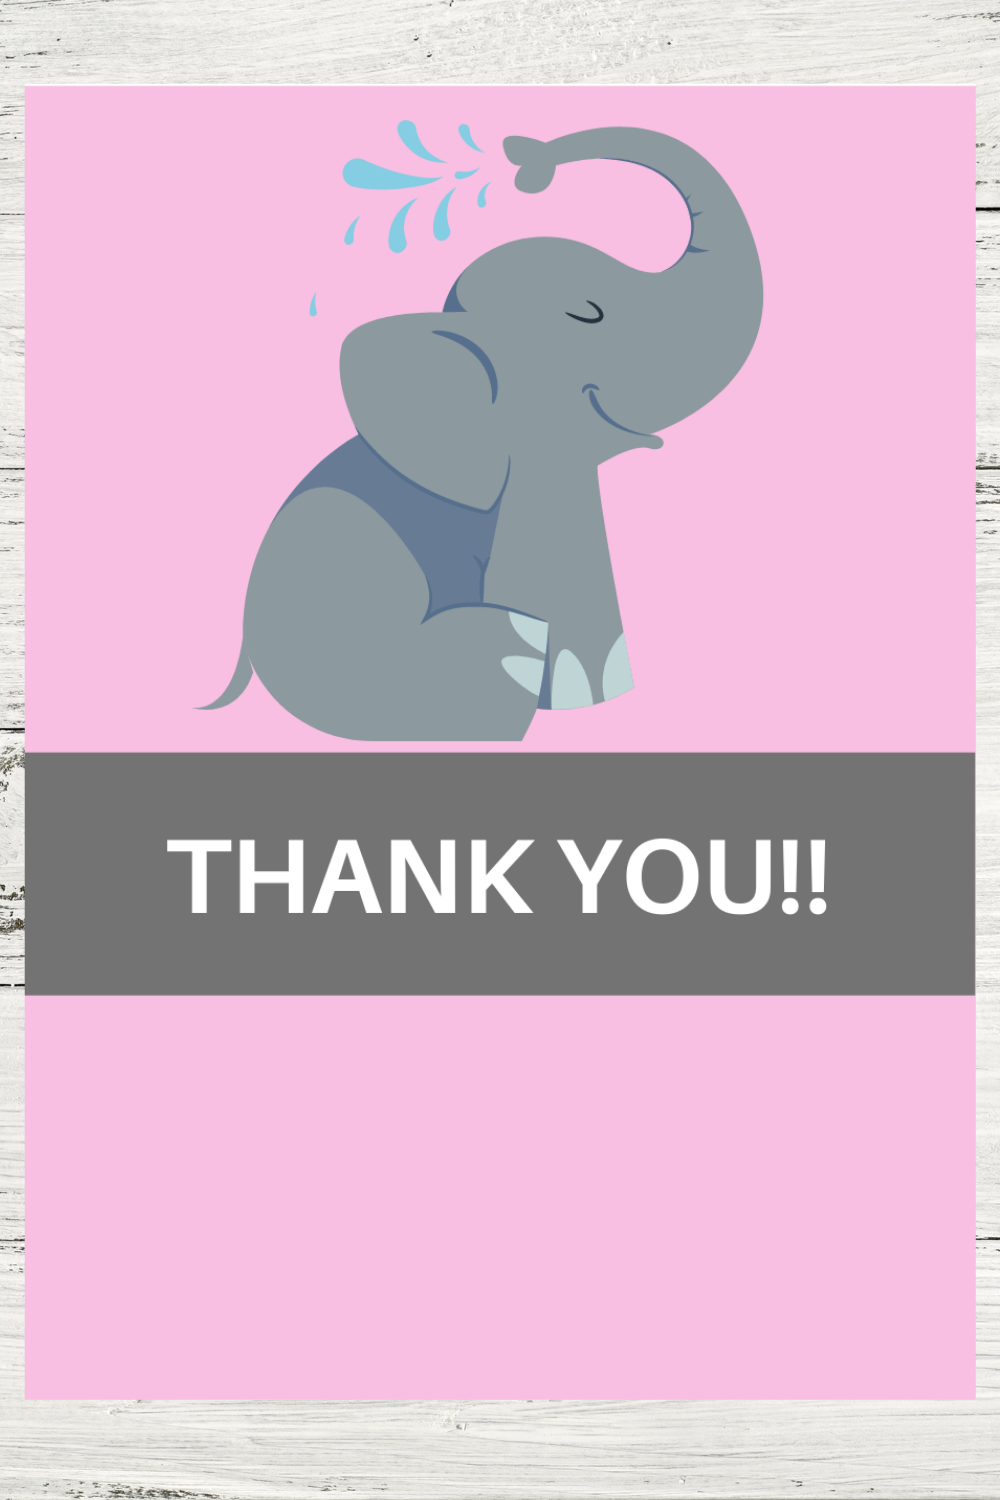 free download: elephant thank you note printable